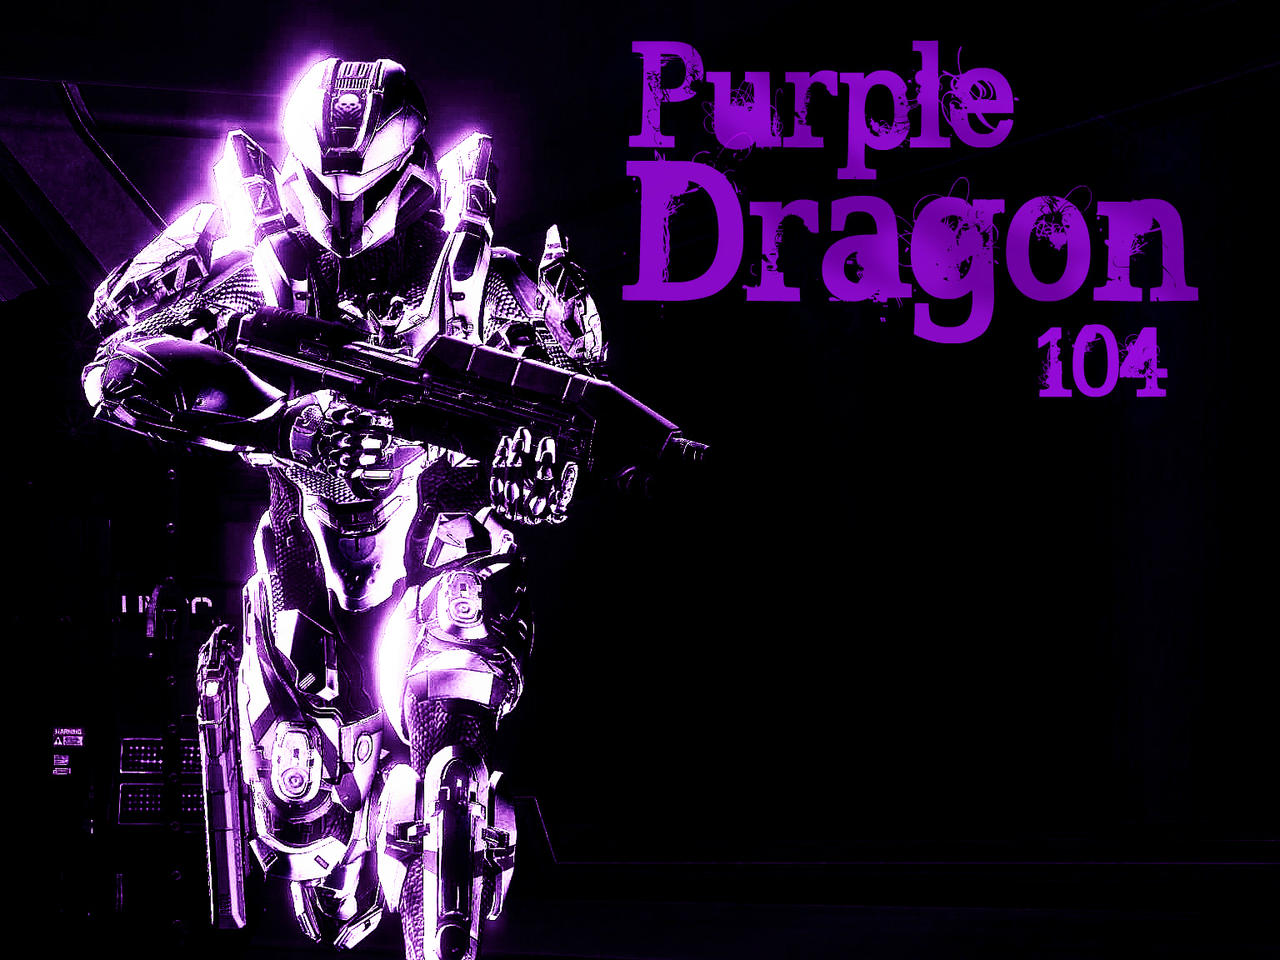 purpledragon104's Profile Picture